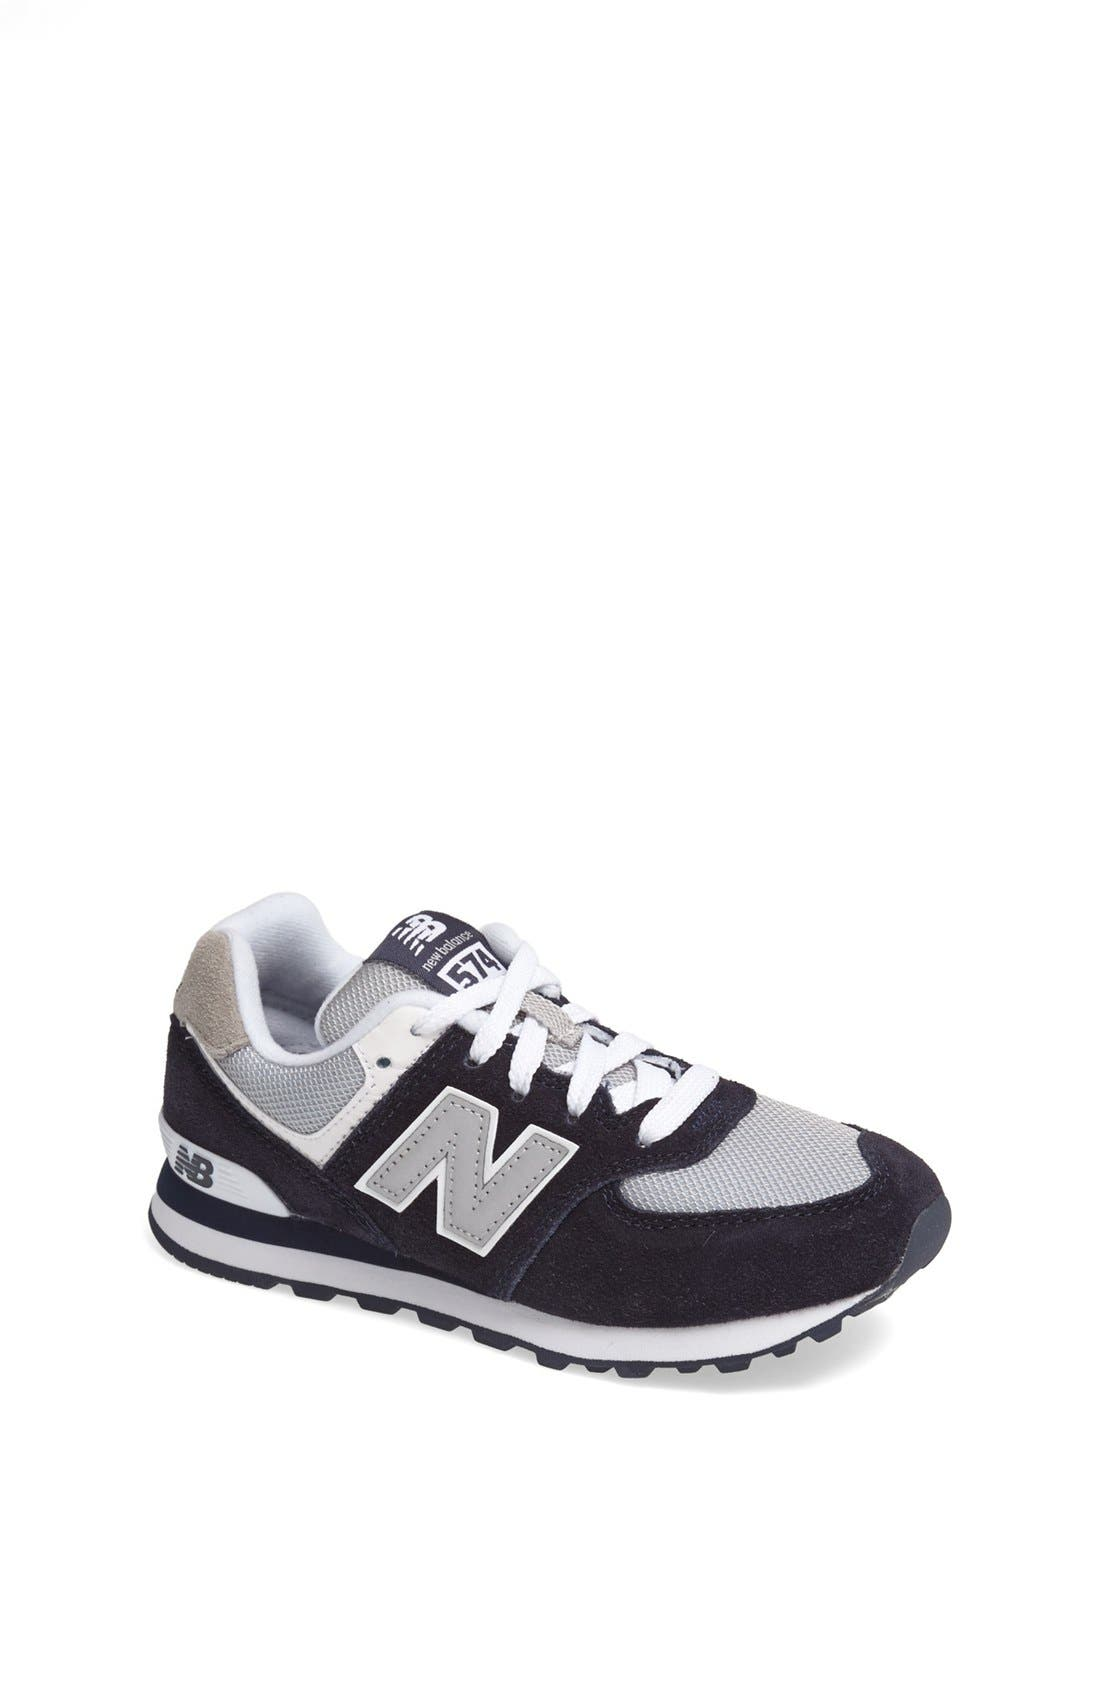 Main Image - New Balance '574 Classic' Sneaker (Toddler & Little Kid)